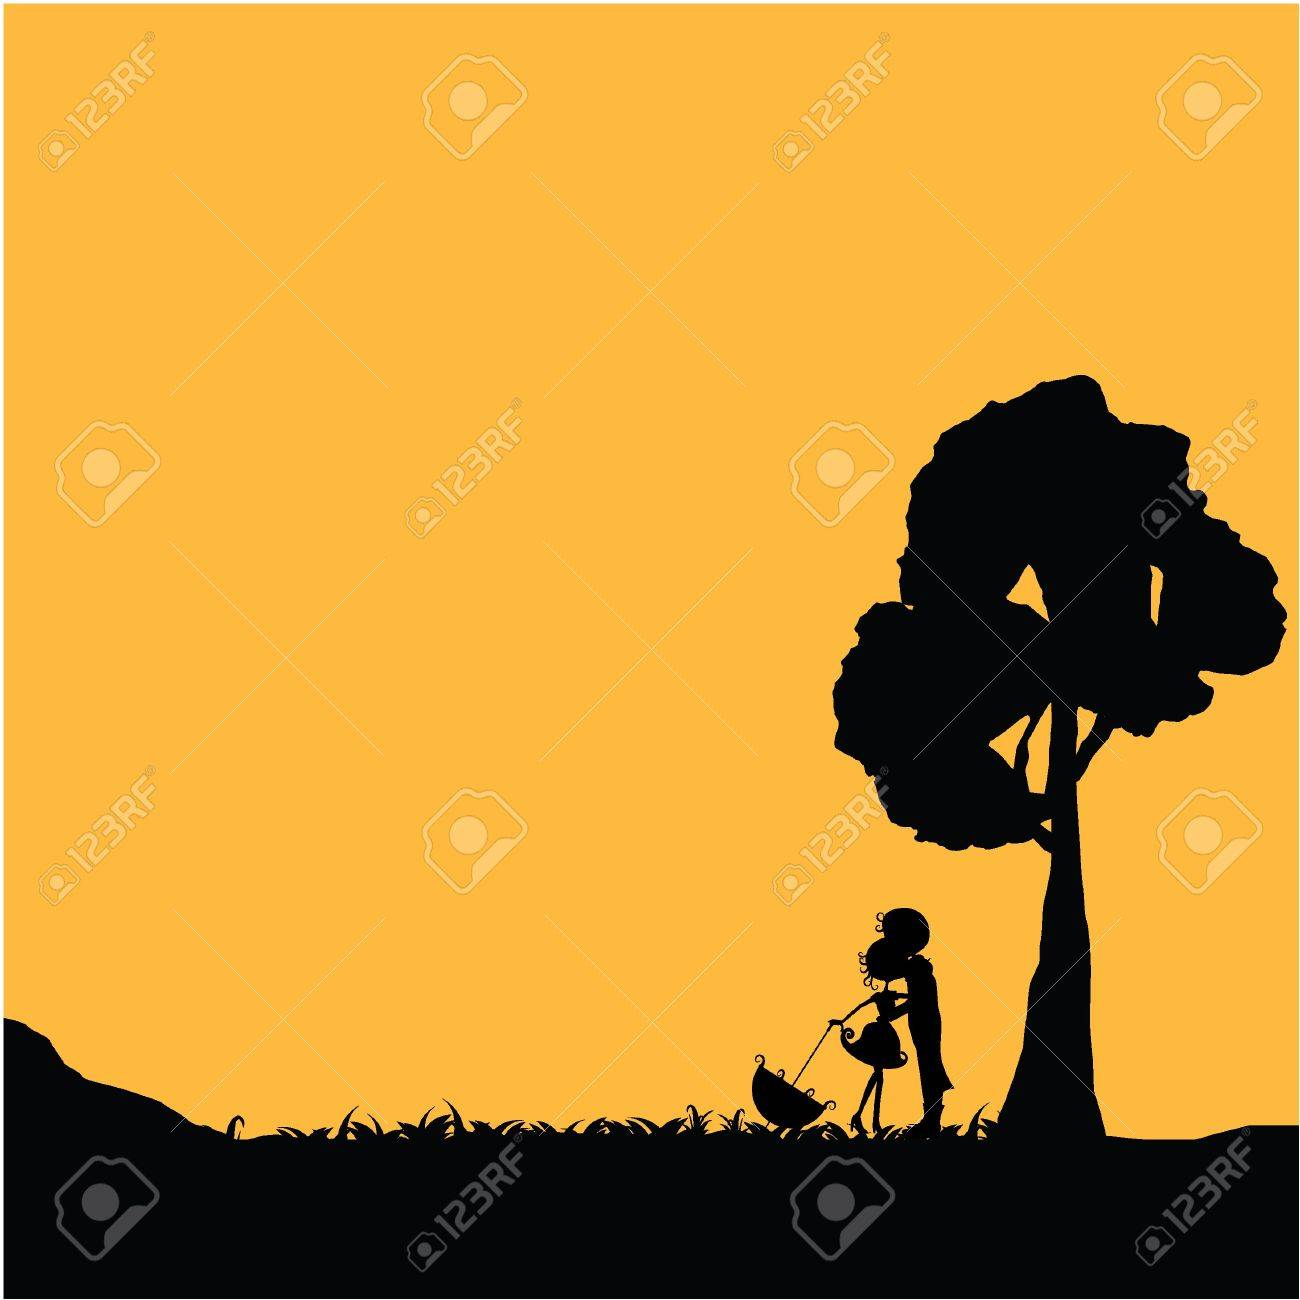 silhouettes couple with tree and orange background Stock Vector - 17545492